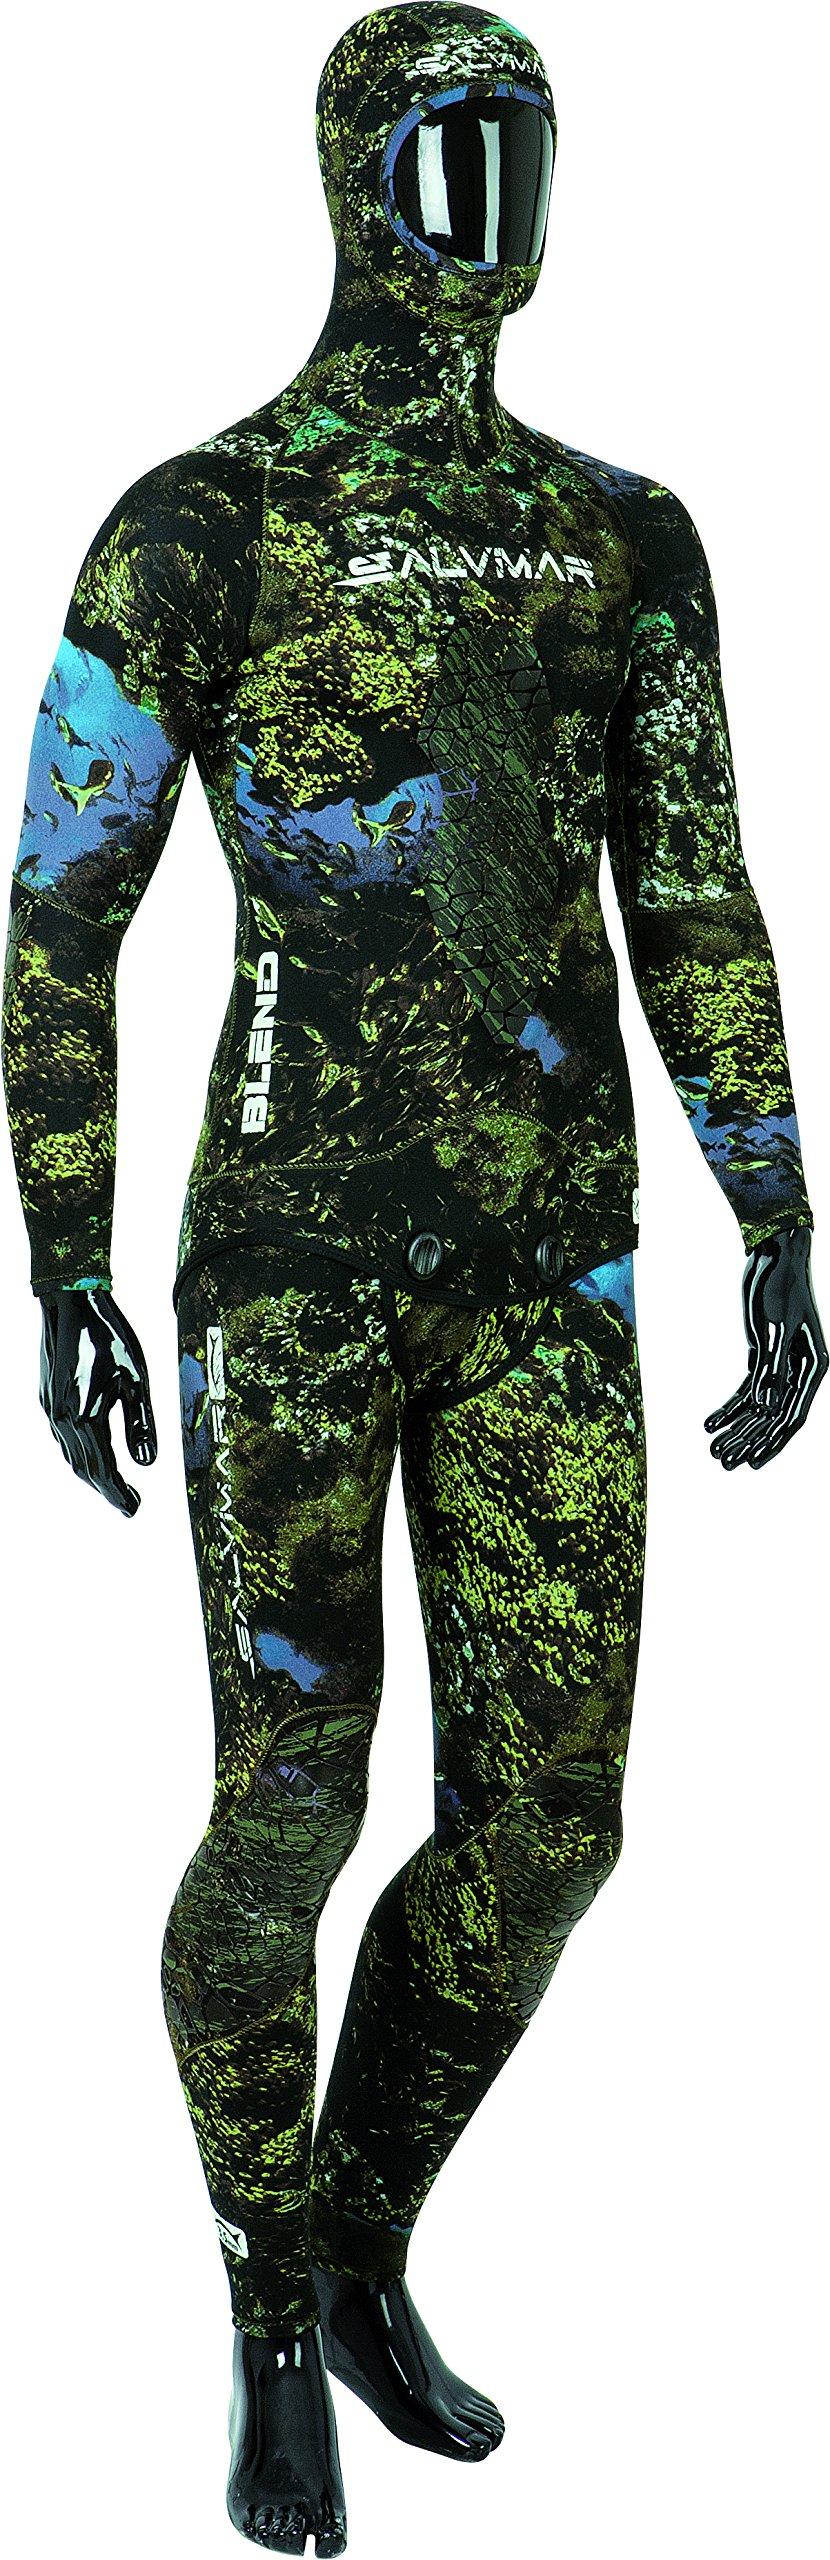 SalviMar Blend 3.5mm Wetsuit, X-Large by SalviMar (Image #1)